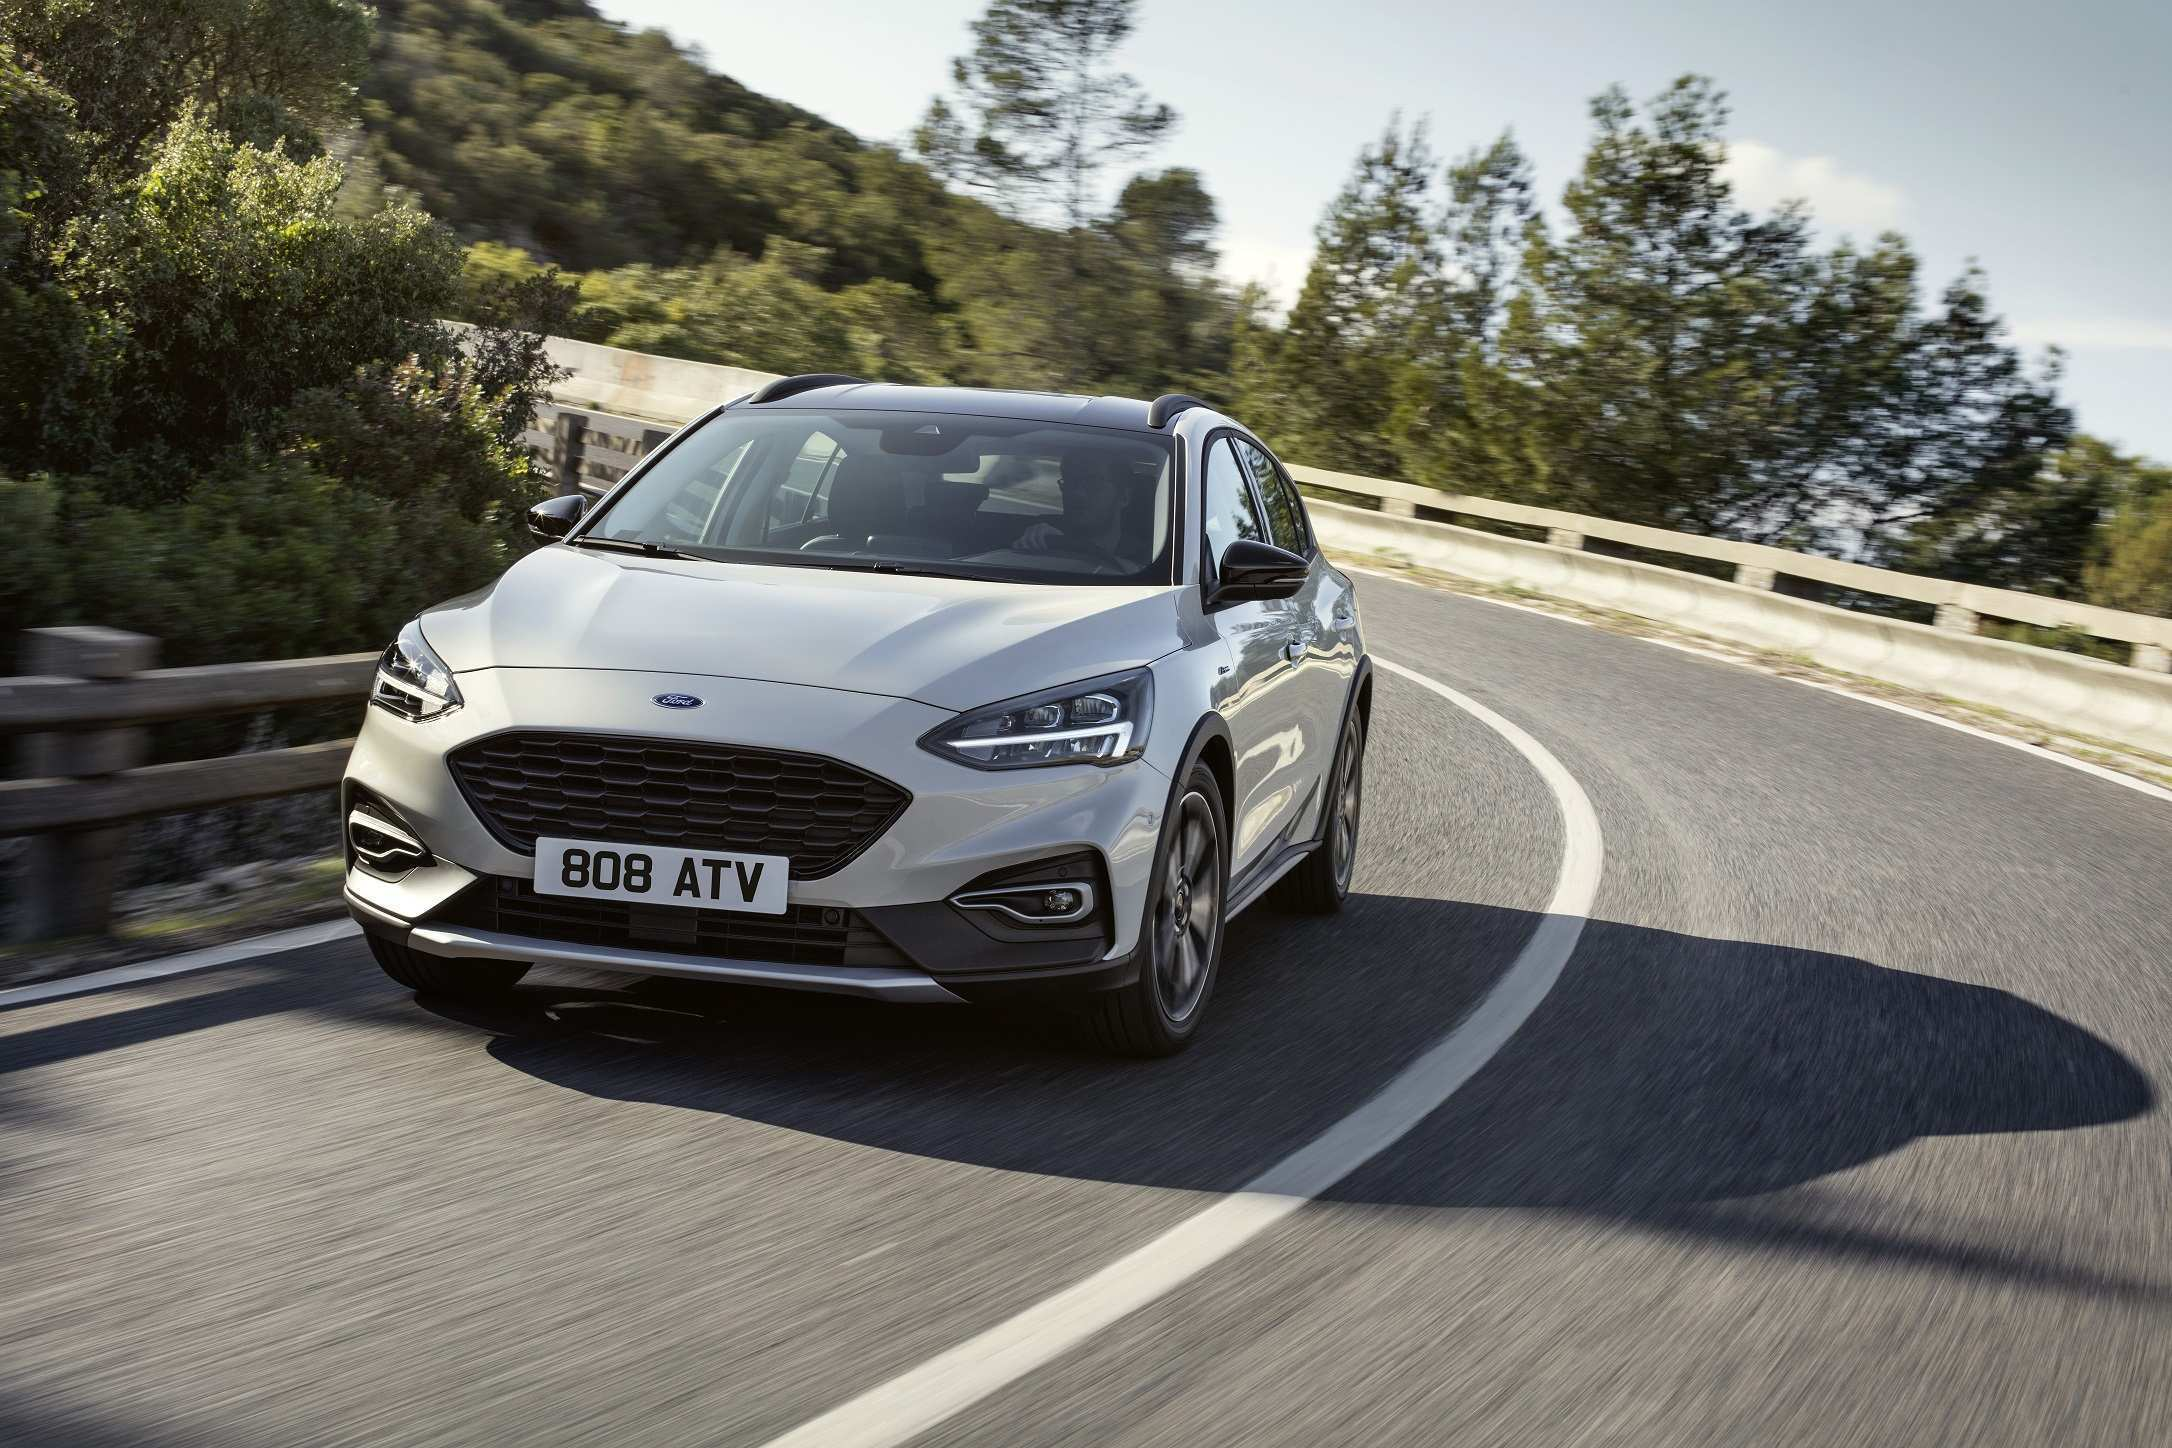 95 The Best 2019 Ford Focus Sedan 2 Wallpaper